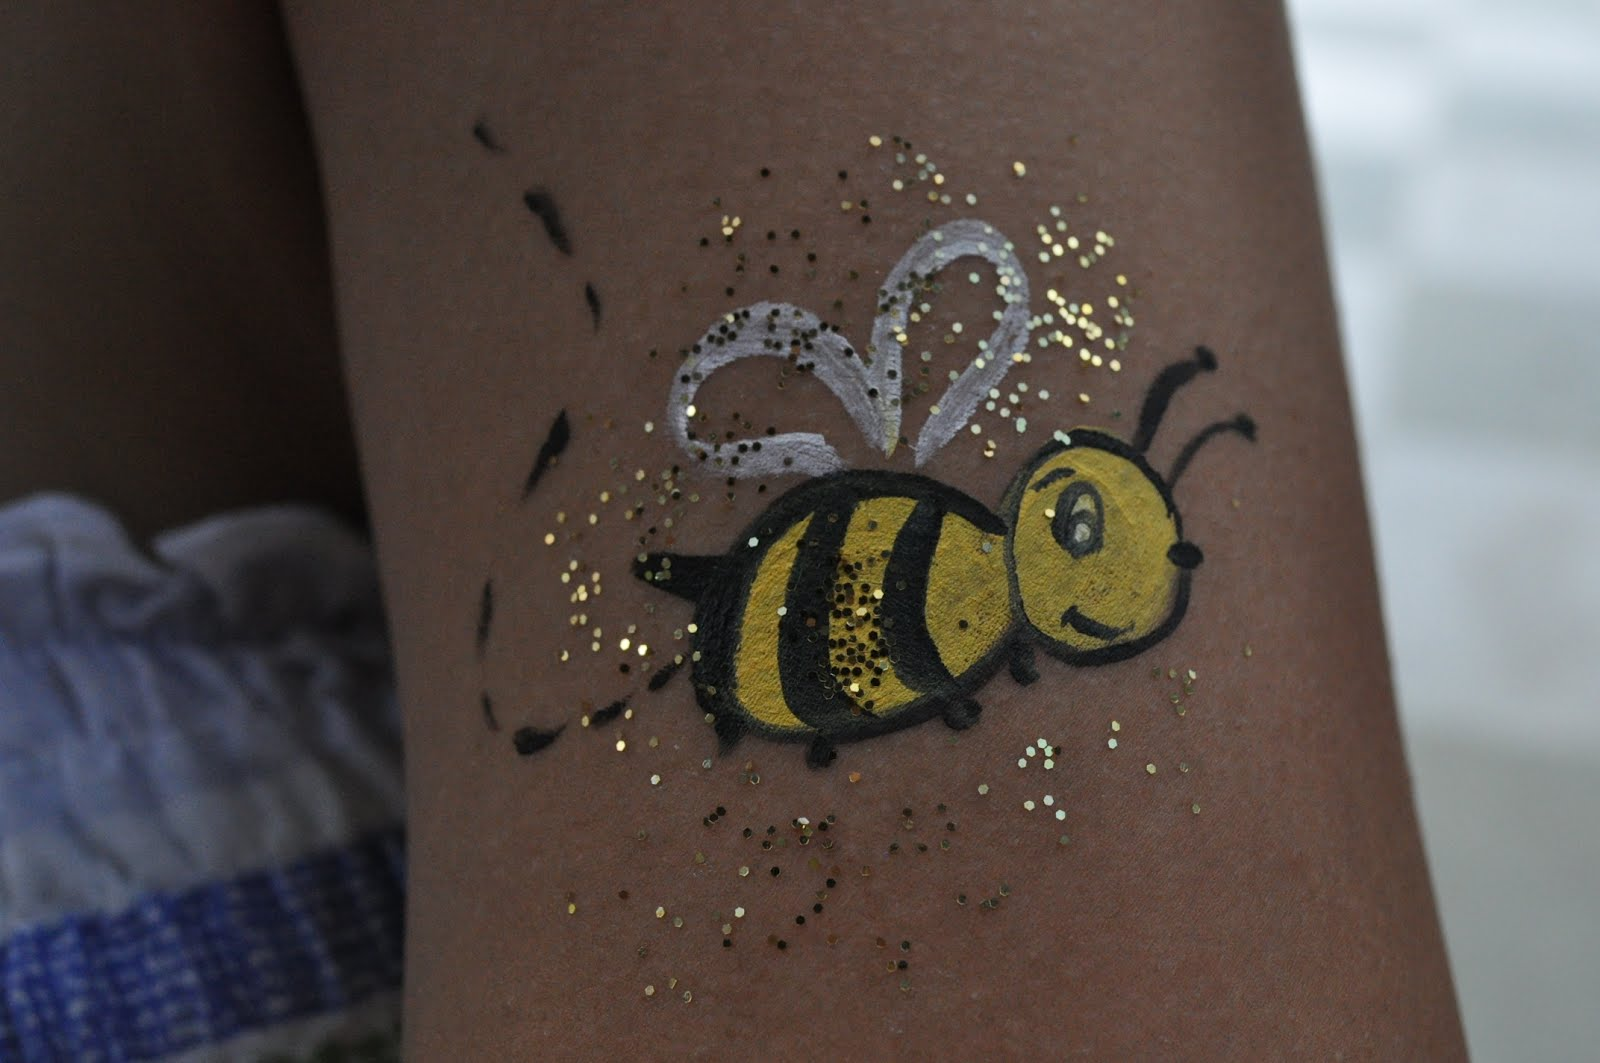 Face Paint Bumble Bee http://femmemannequin.blogspot.com/2012/06/face-painting-and-hand-painting-fun.html